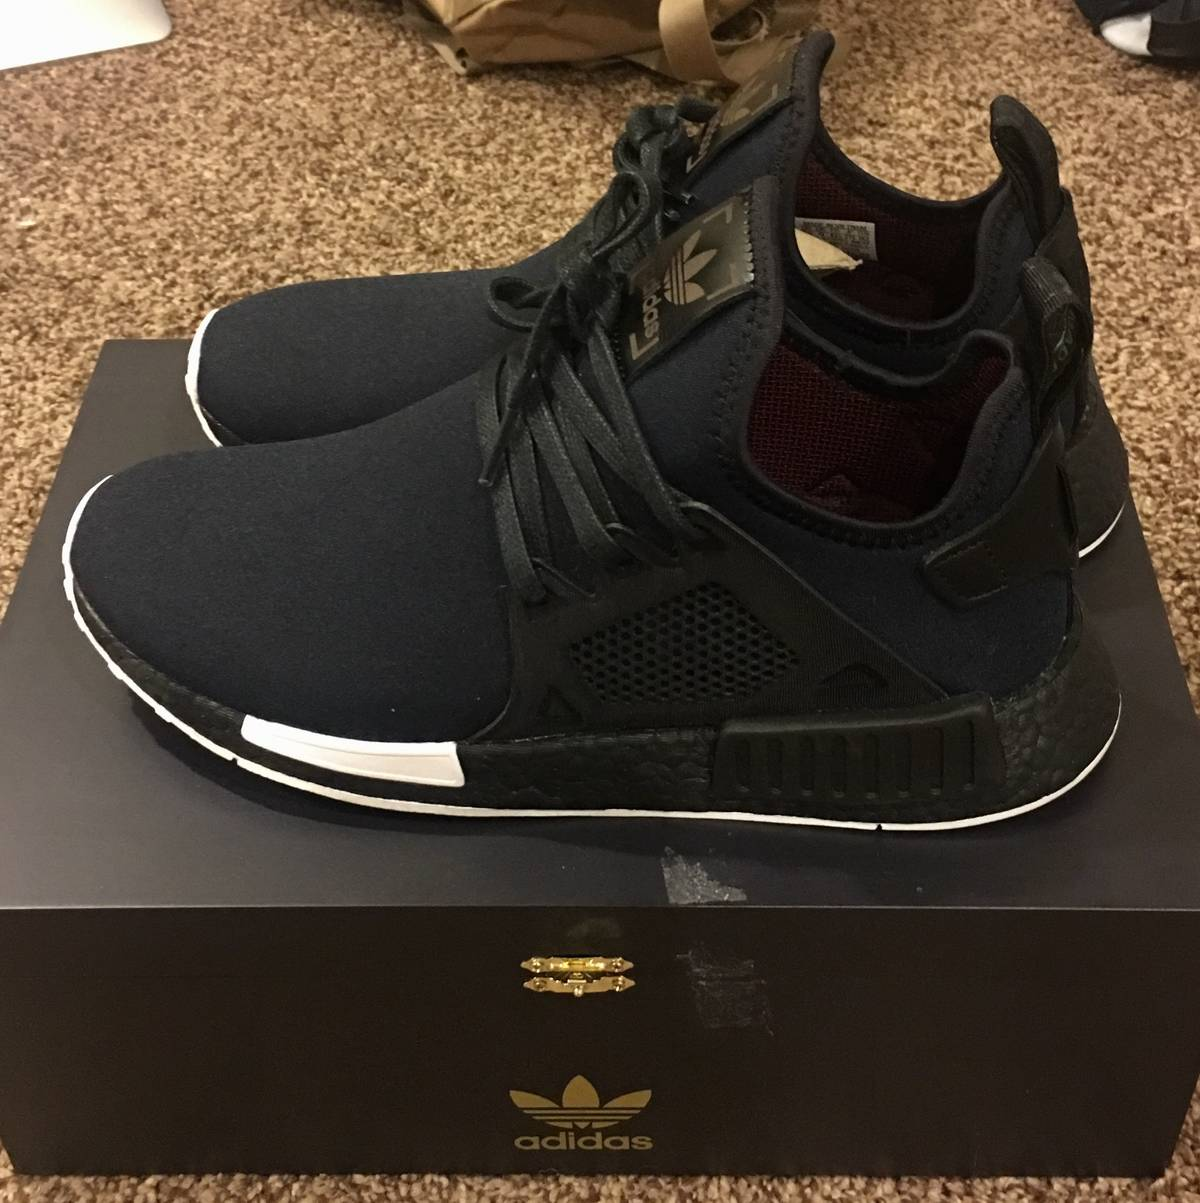 save off 32882 ee64d Adidas Nmd Xr1 'henry Poole' Size 9.5 $252